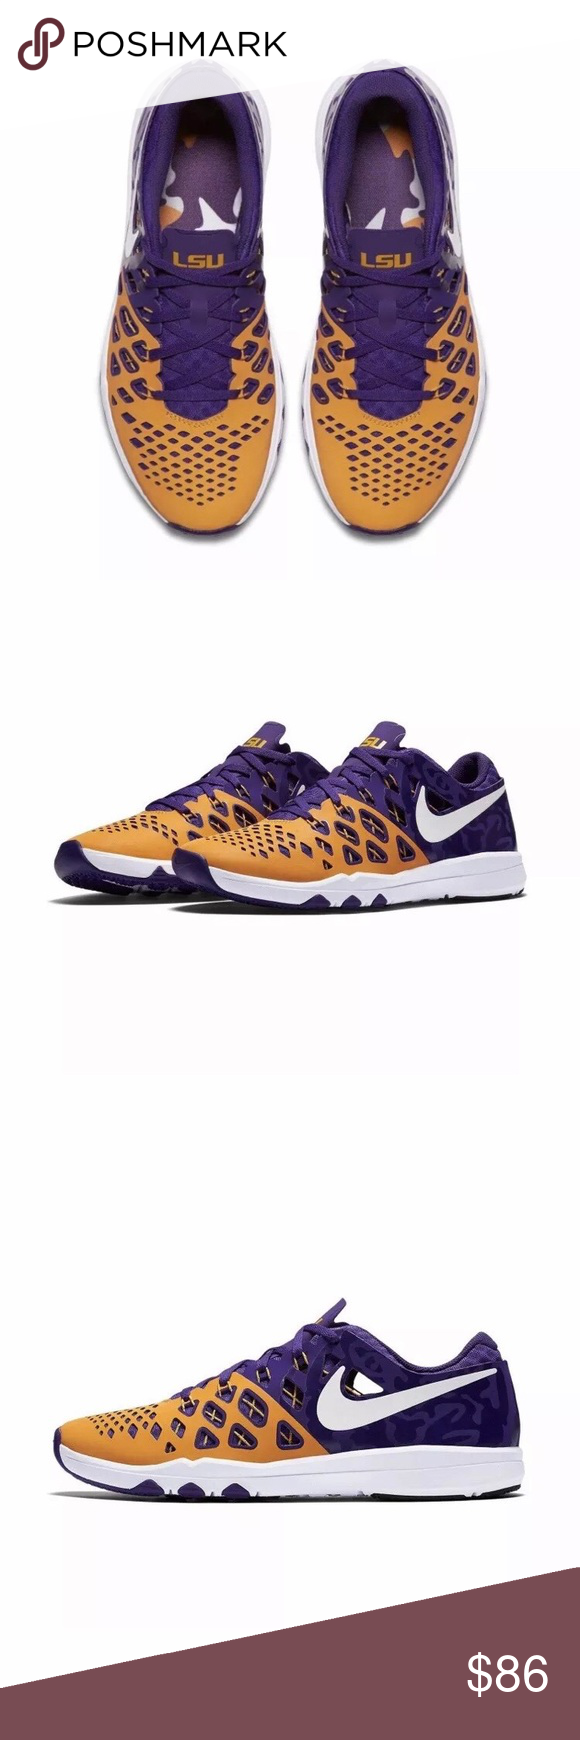 23516fd0d3039e Nike Train Speed LSU Tigers Purple Yellow size 12 New Nike Train Speed 4  AMP Sneakers LSU Tigers Color Purple and Yellow Size 12 Limited edition  Brand new ...